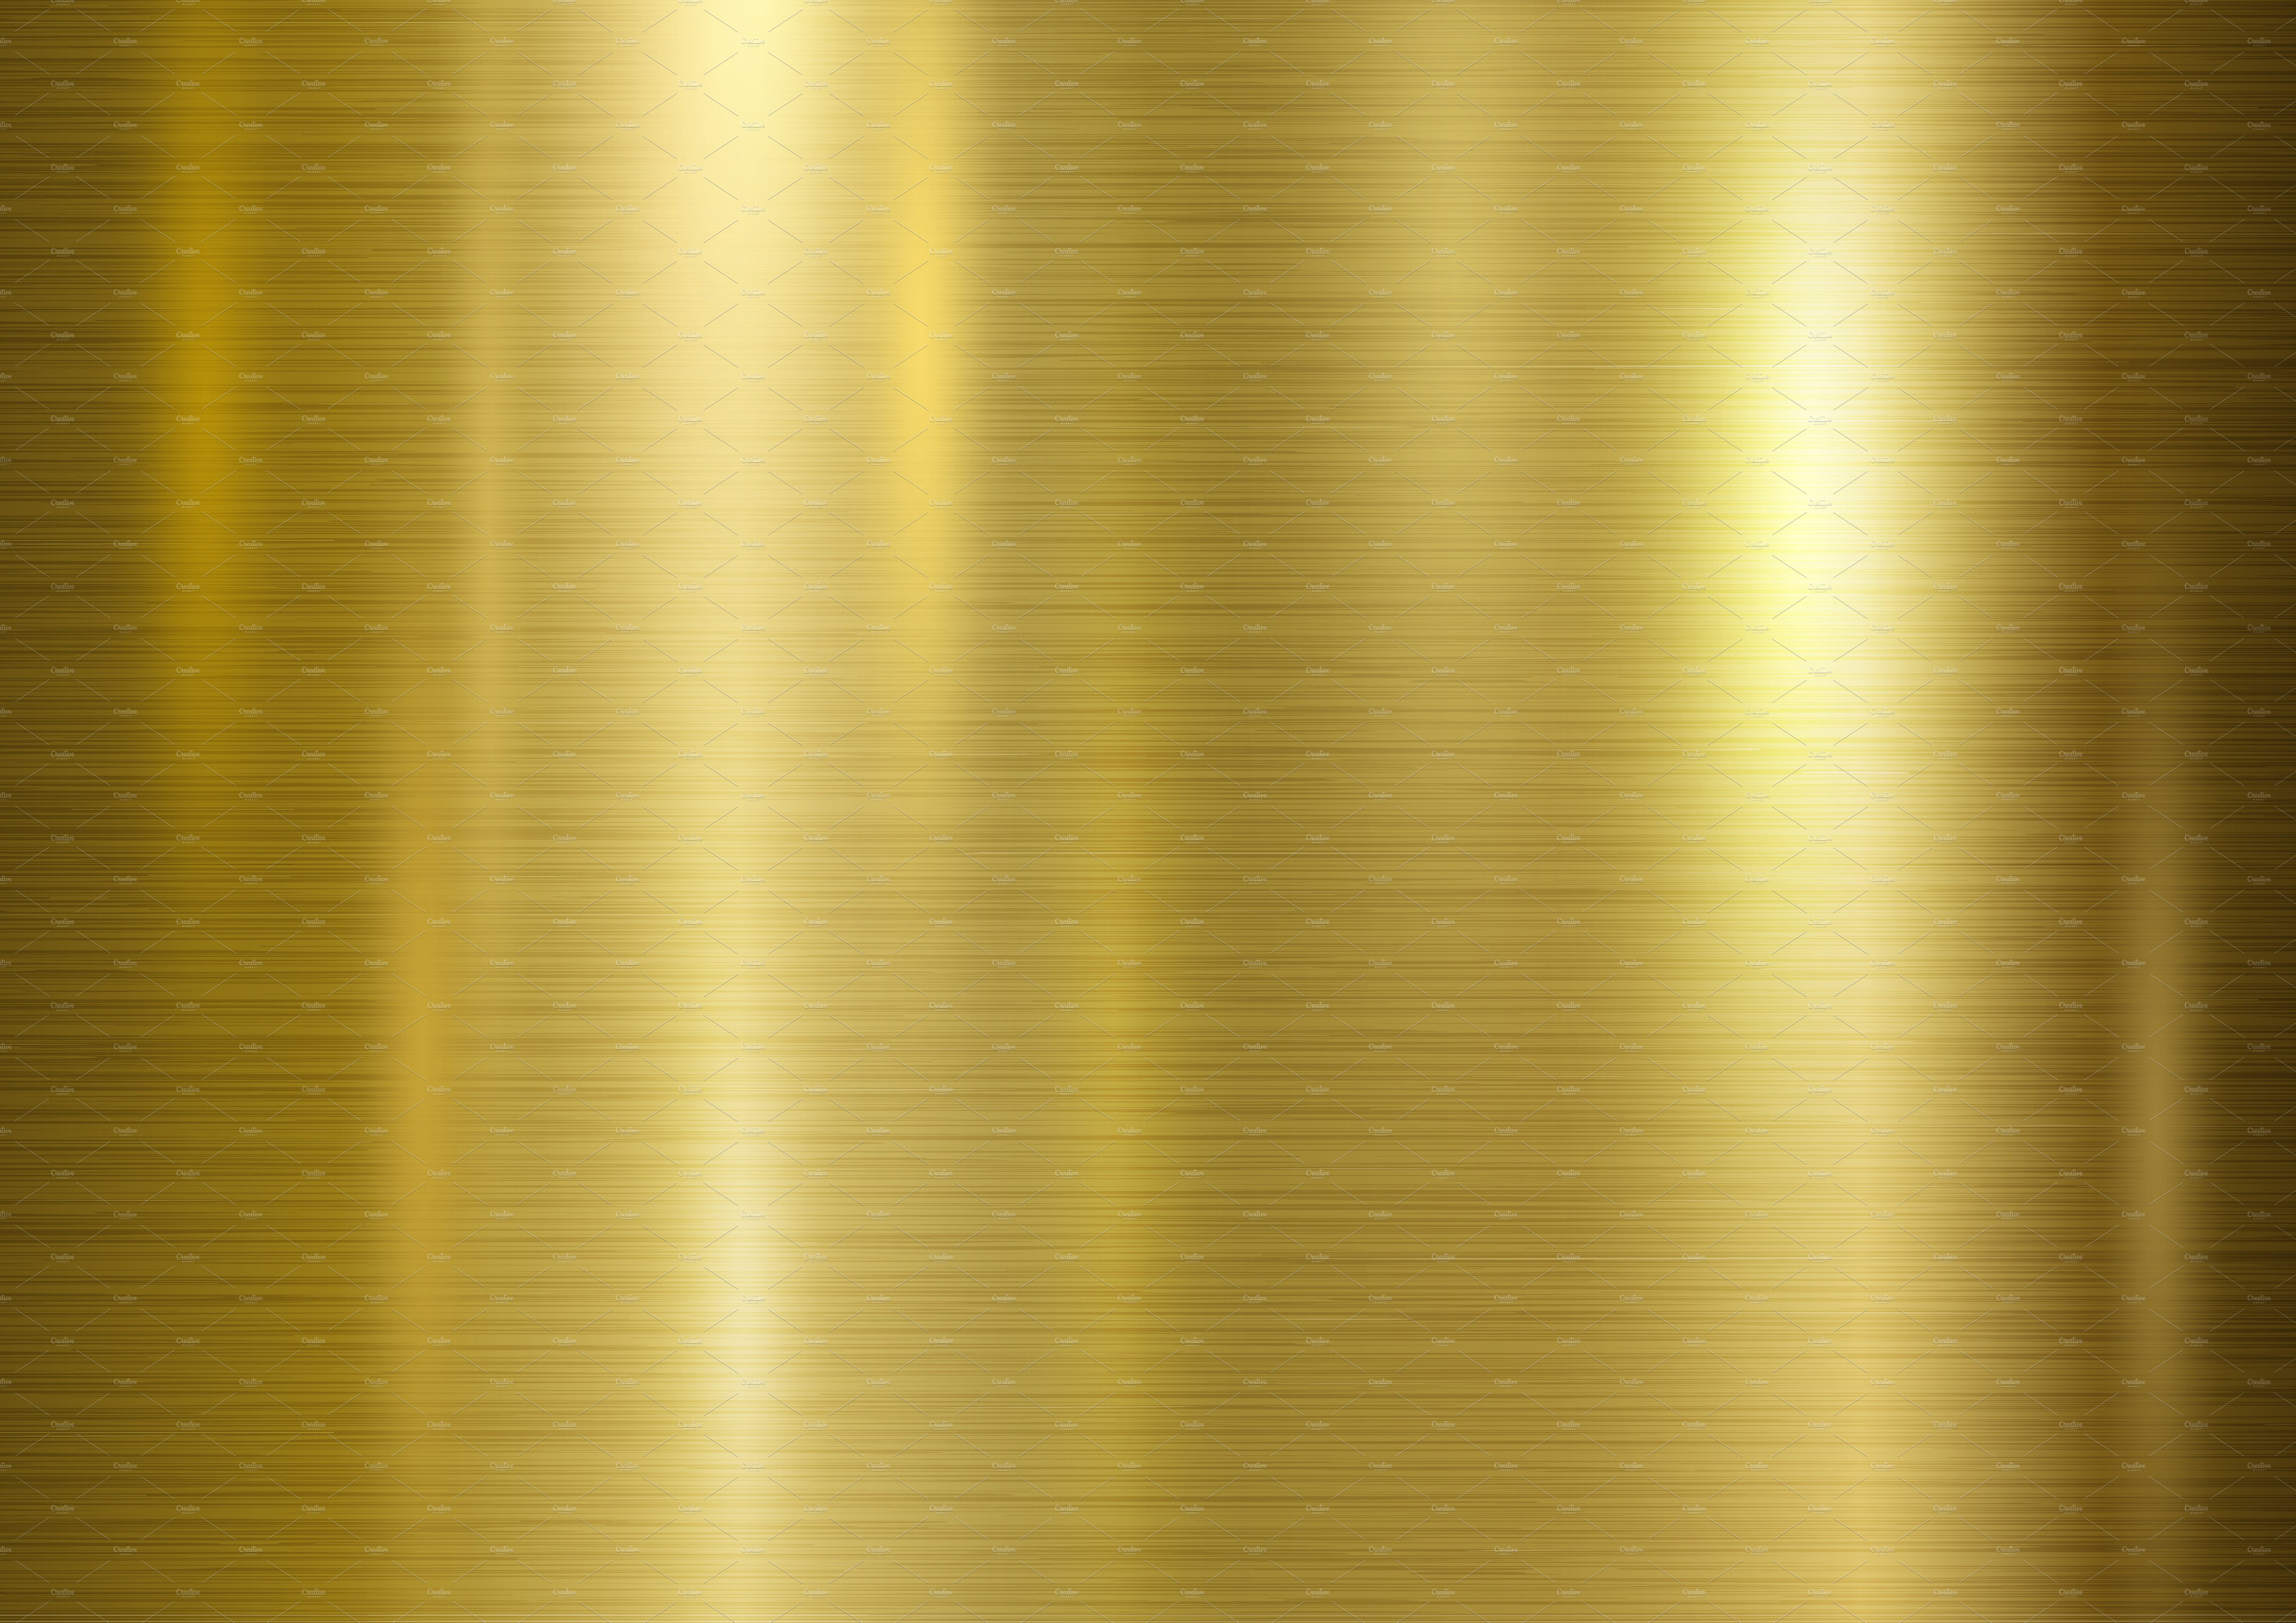 gold metal texture background illustrations creative market